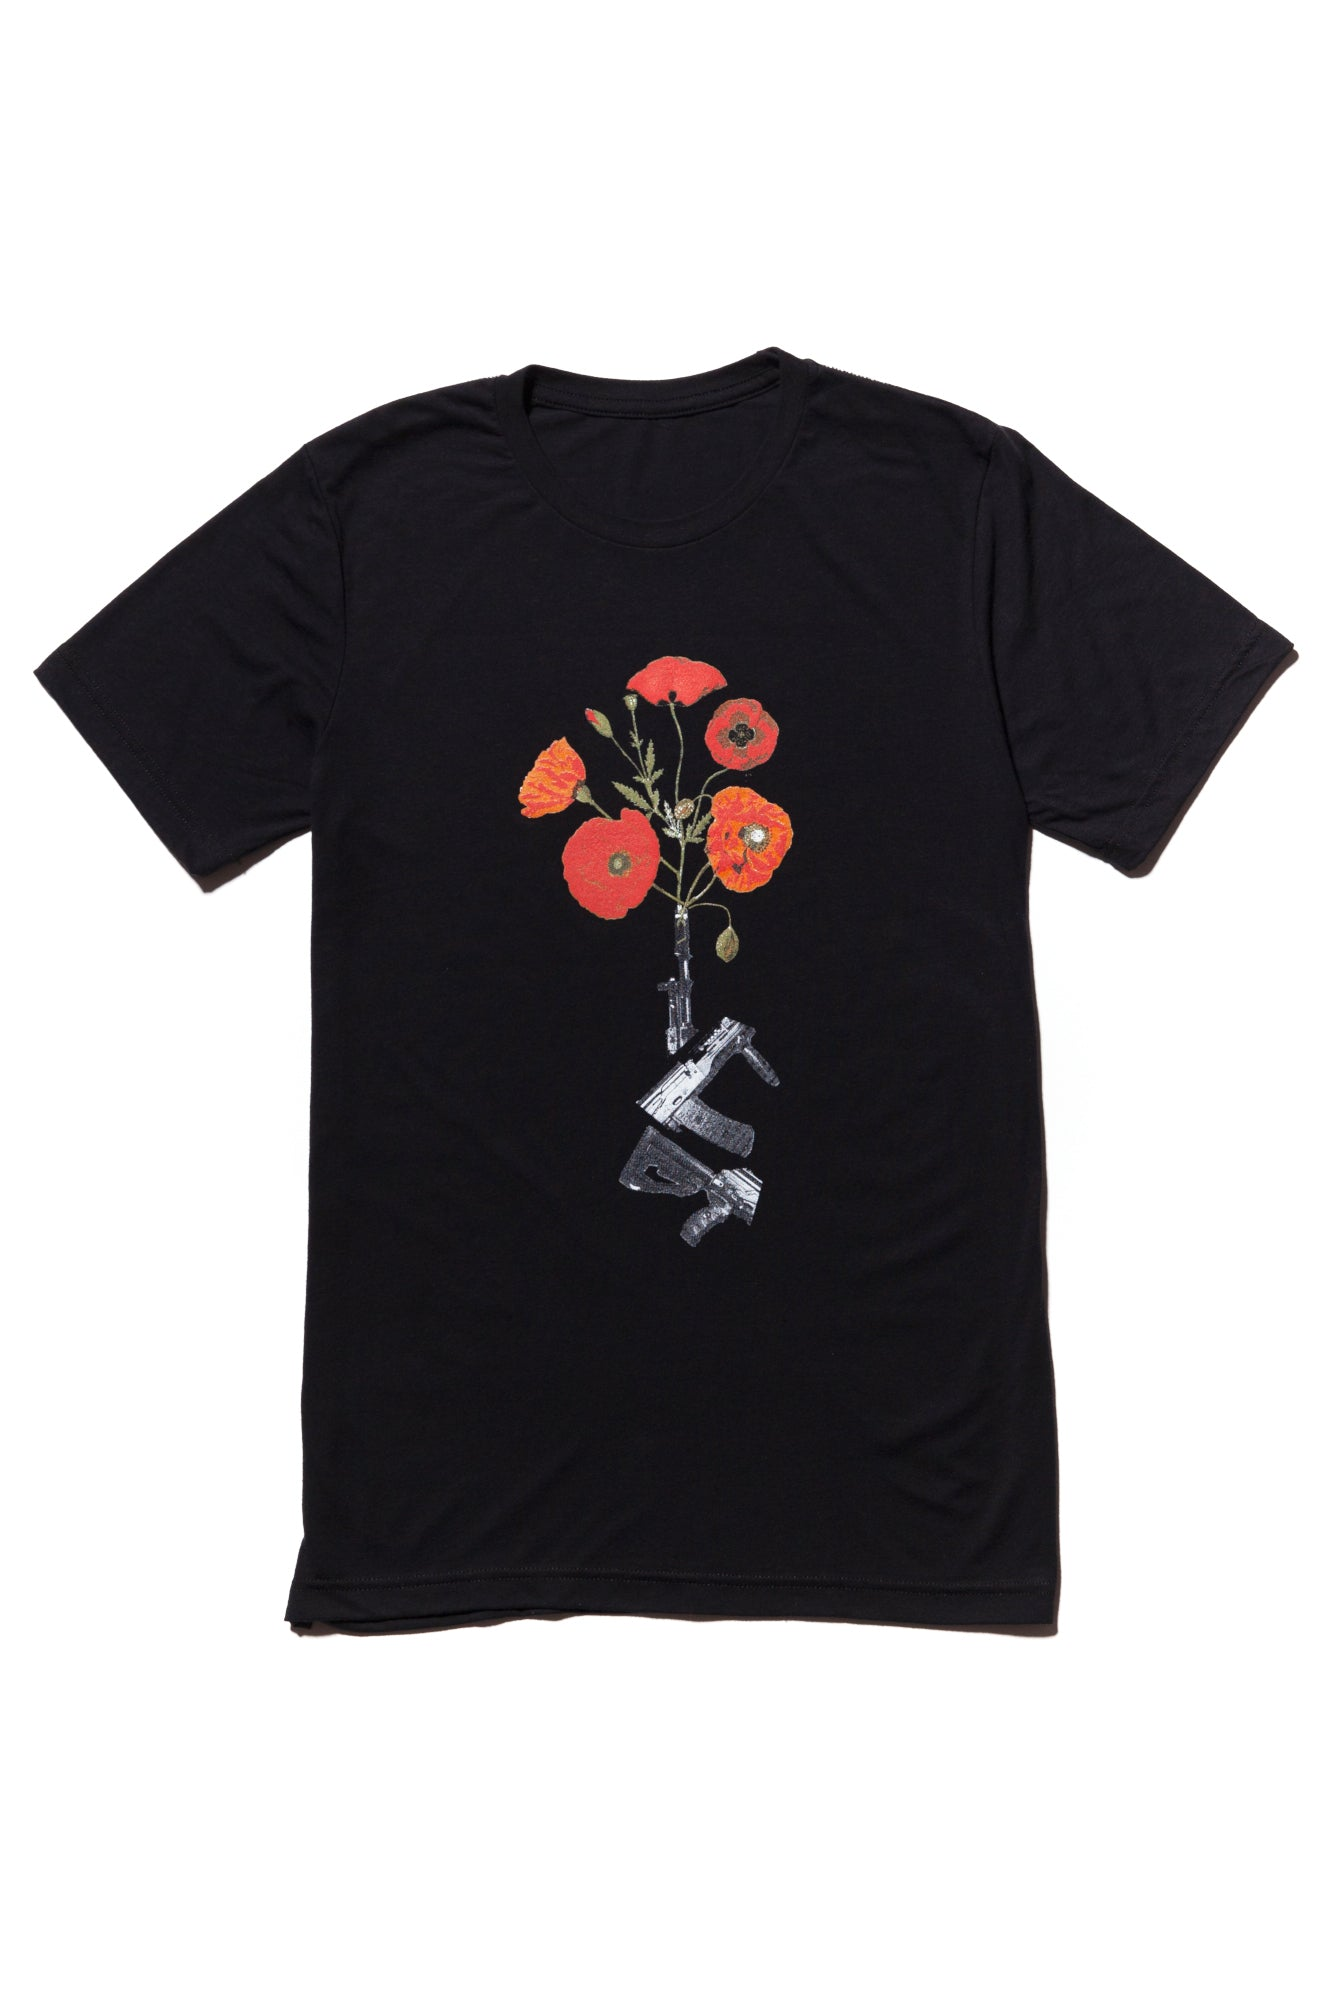 soundoff.mens.black.t.shirt.graphic.tee.give.peace.a.chance.cotton.polyester.rayon.blend.